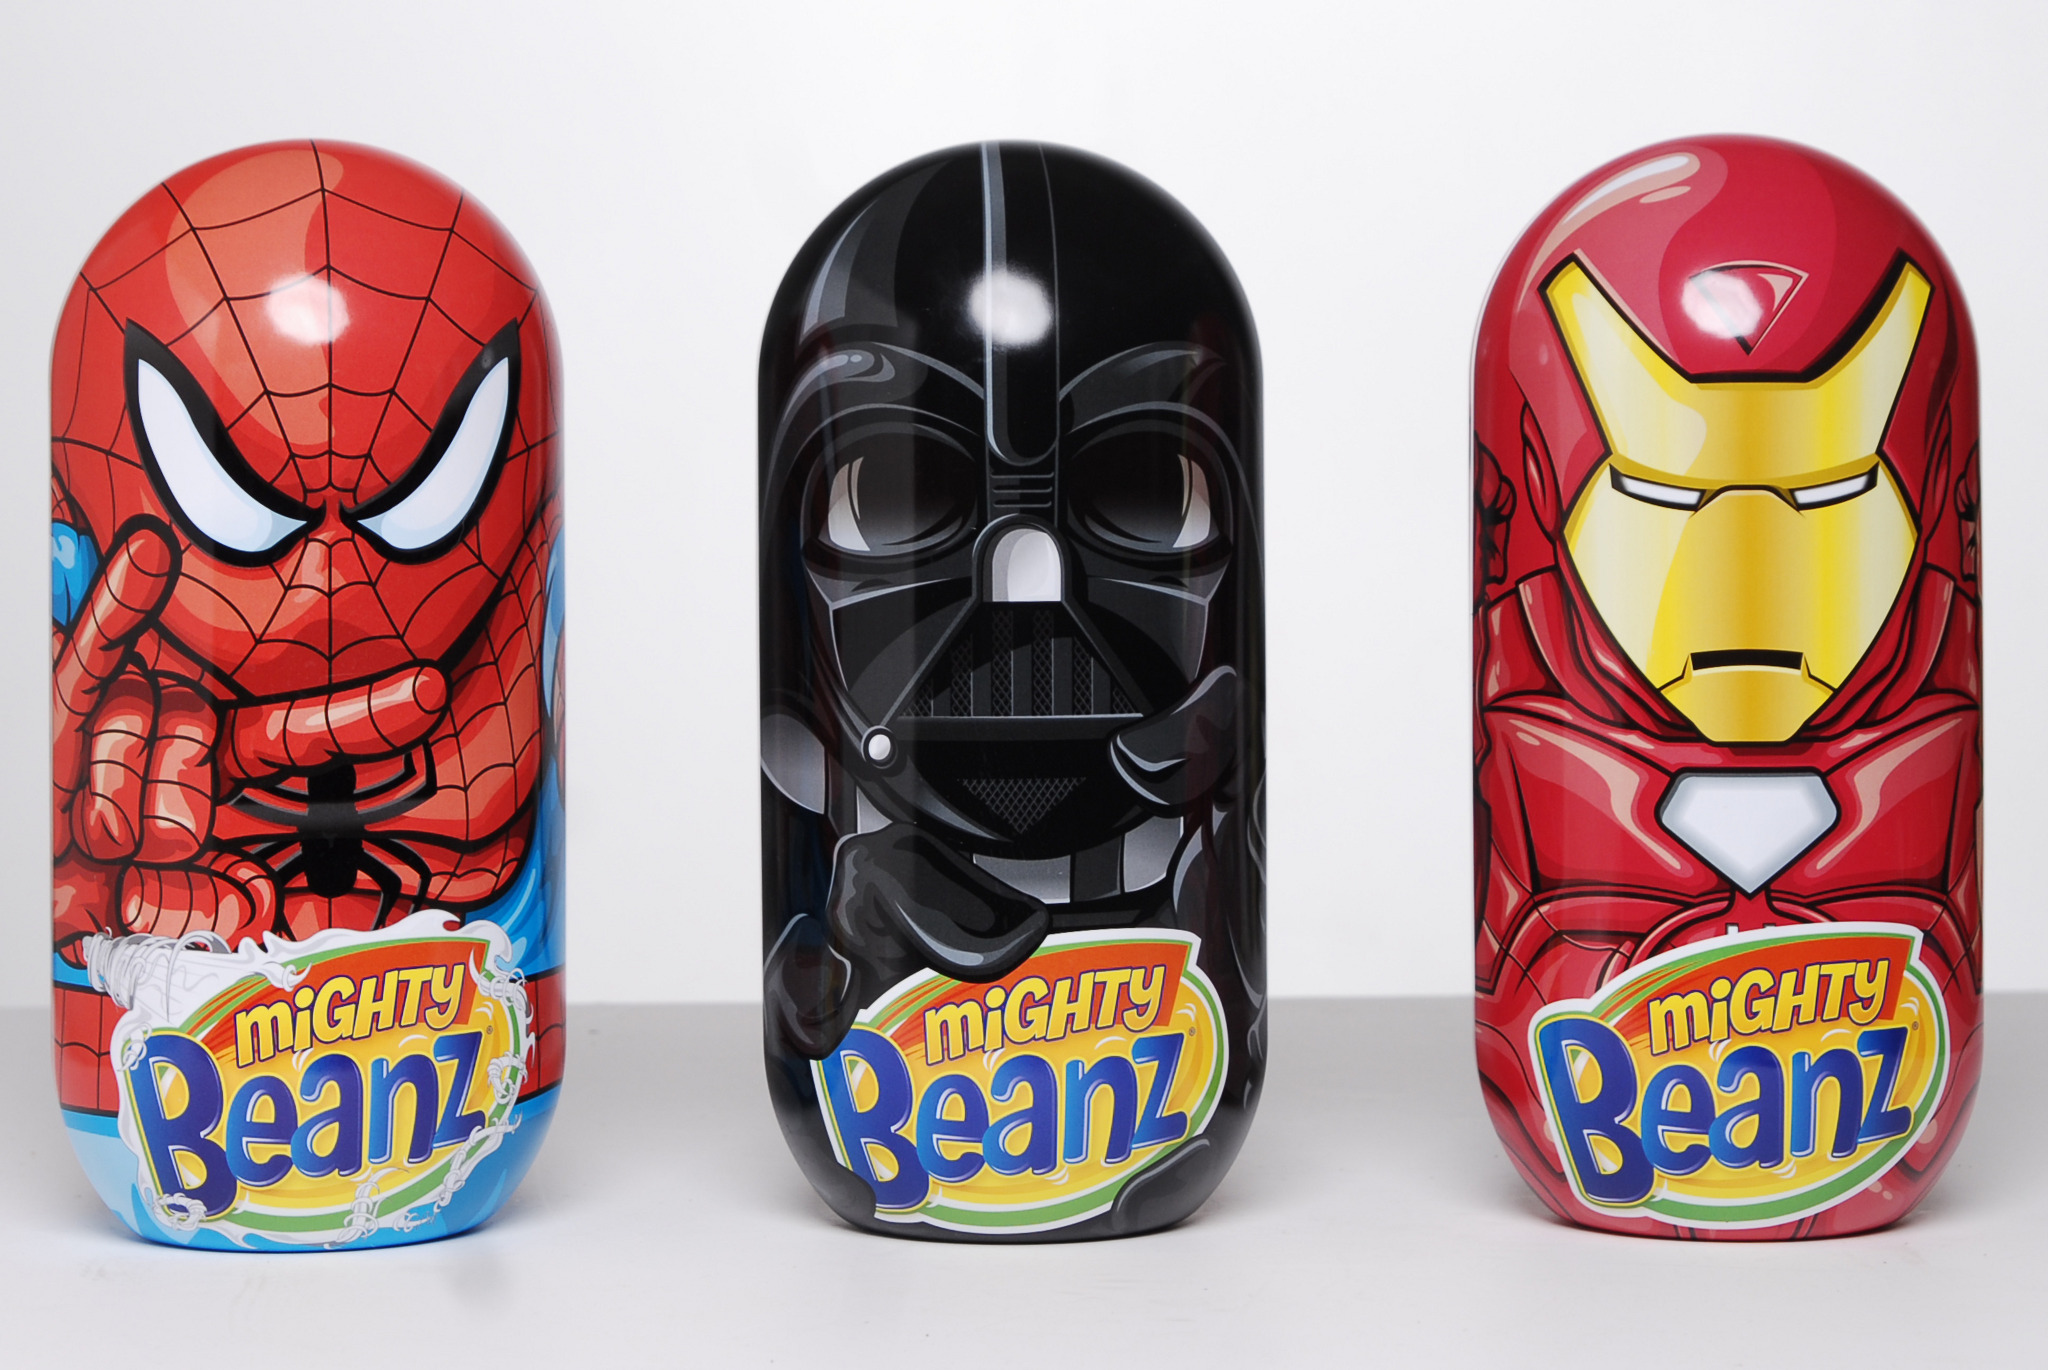 Licensed Mighty Beanz Tins